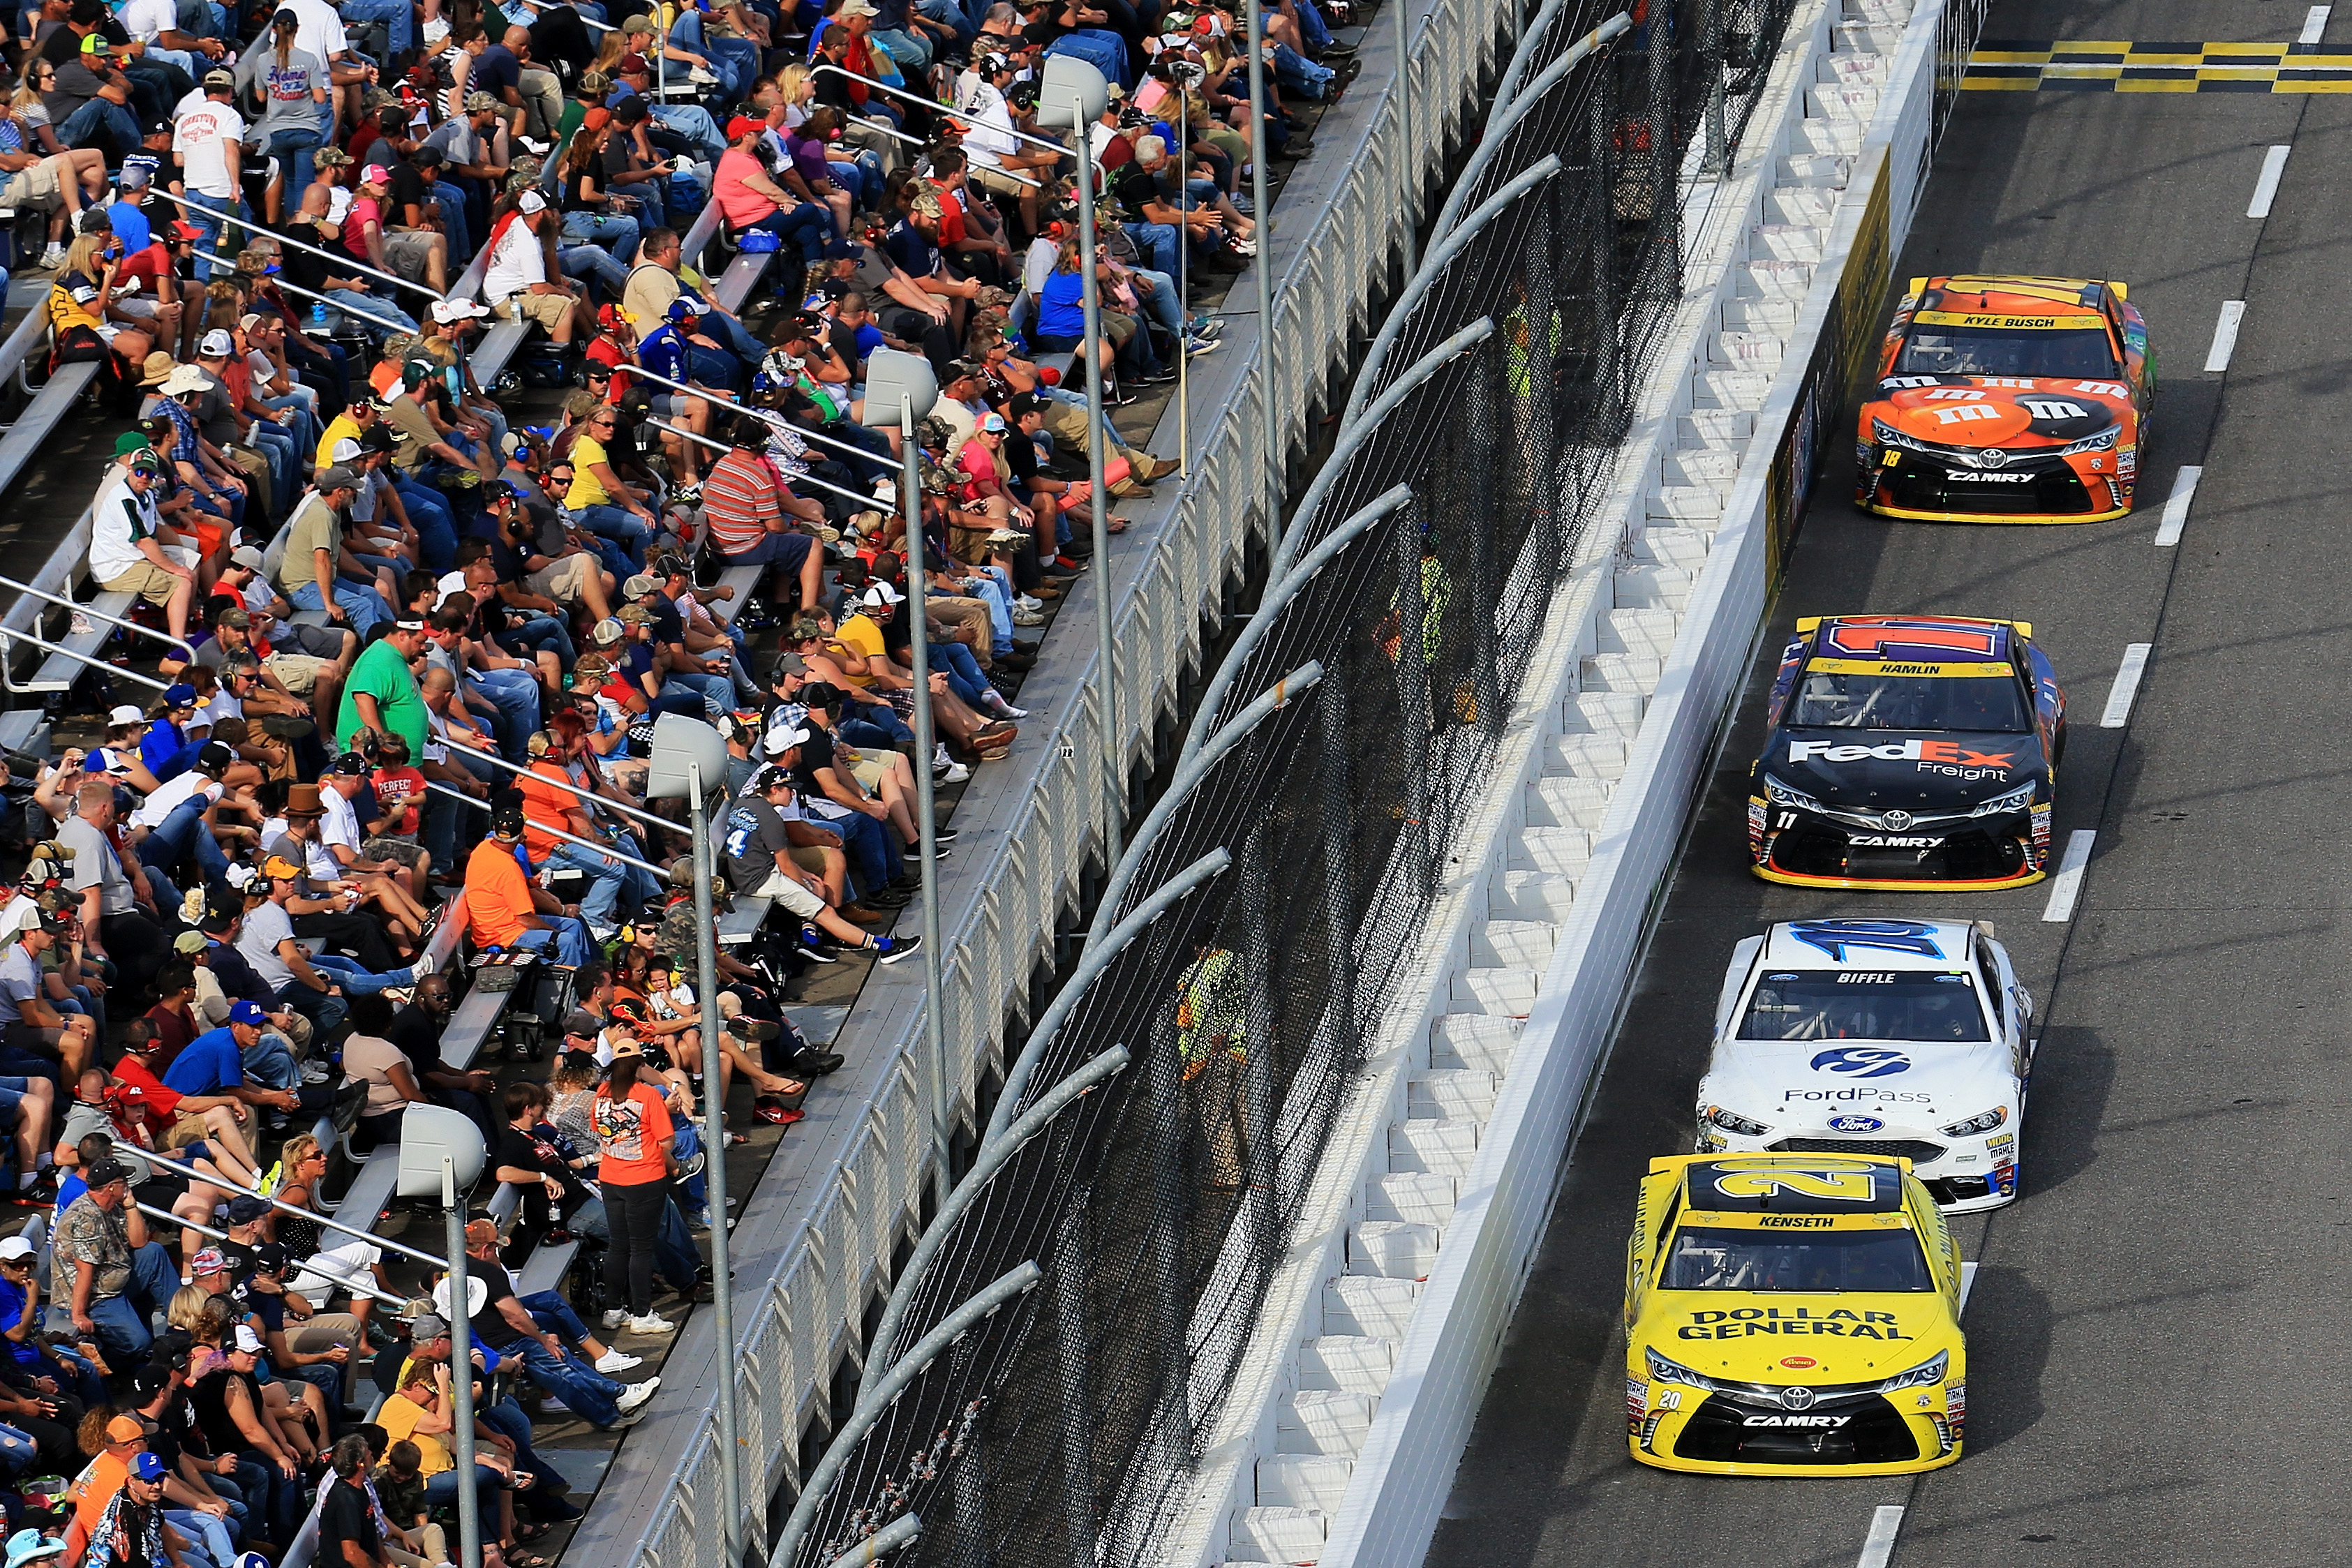 A pack of cars race during the NASCAR Sprint Cup Series Goody's Fast Relief 500 on October 30, 2016 in Martinsville, Virginia.